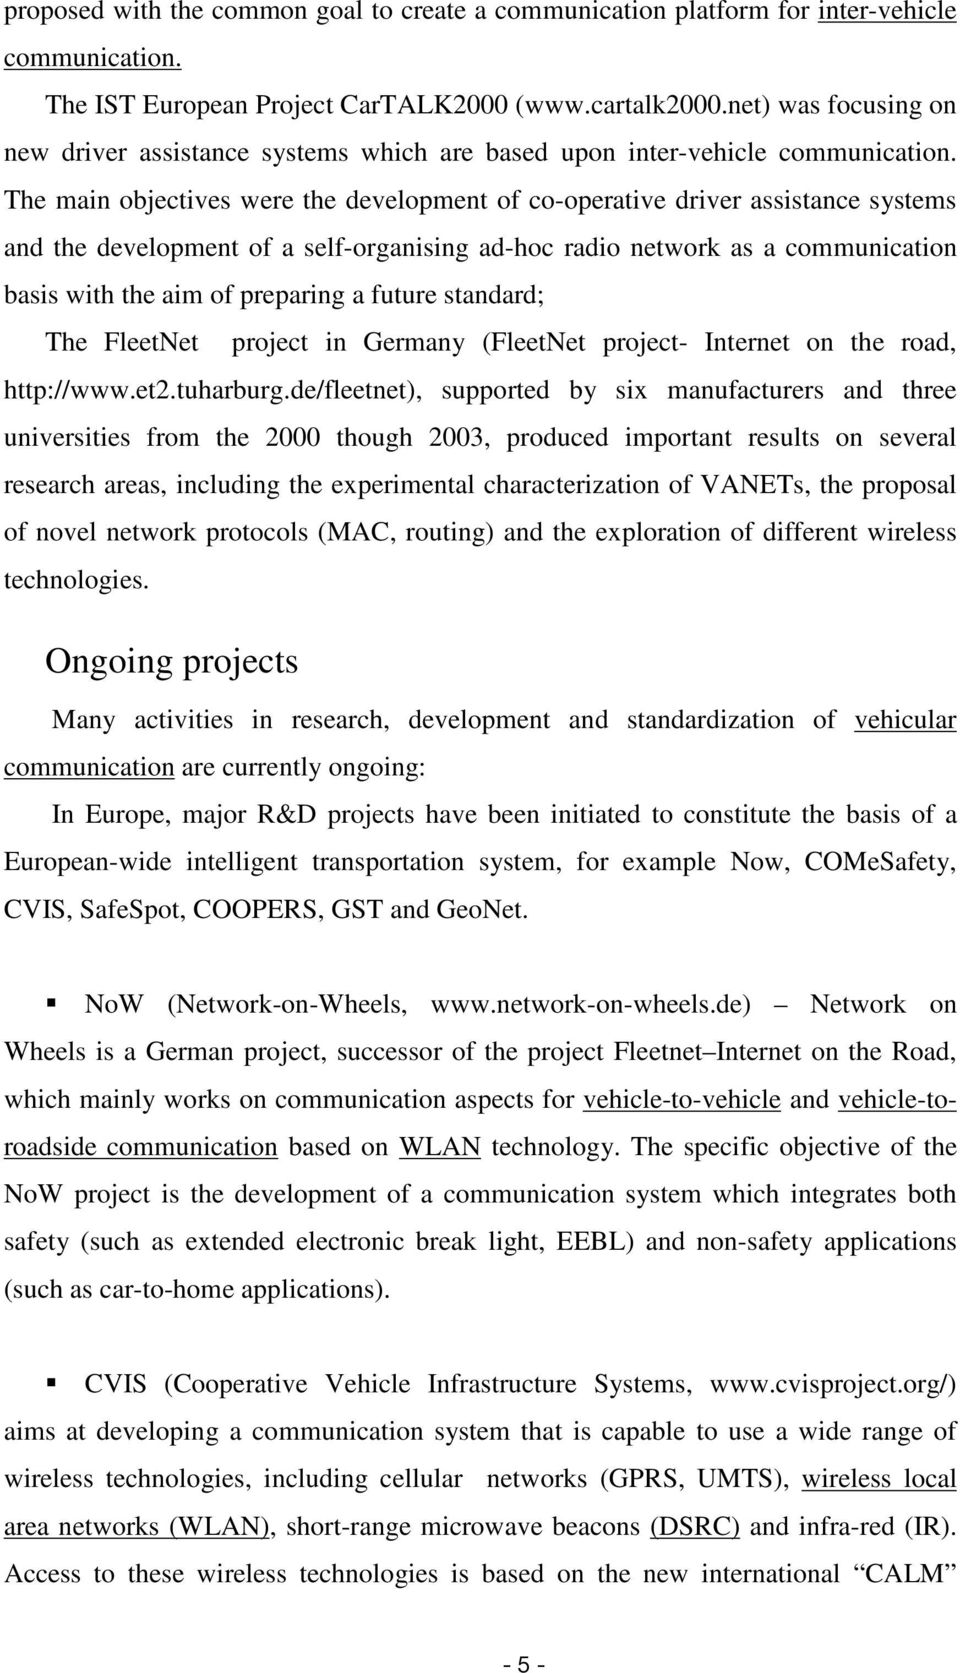 The main objectives were the development of co-operative driver assistance systems and the development of a self-organising ad-hoc radio network as a communication basis with the aim of preparing a